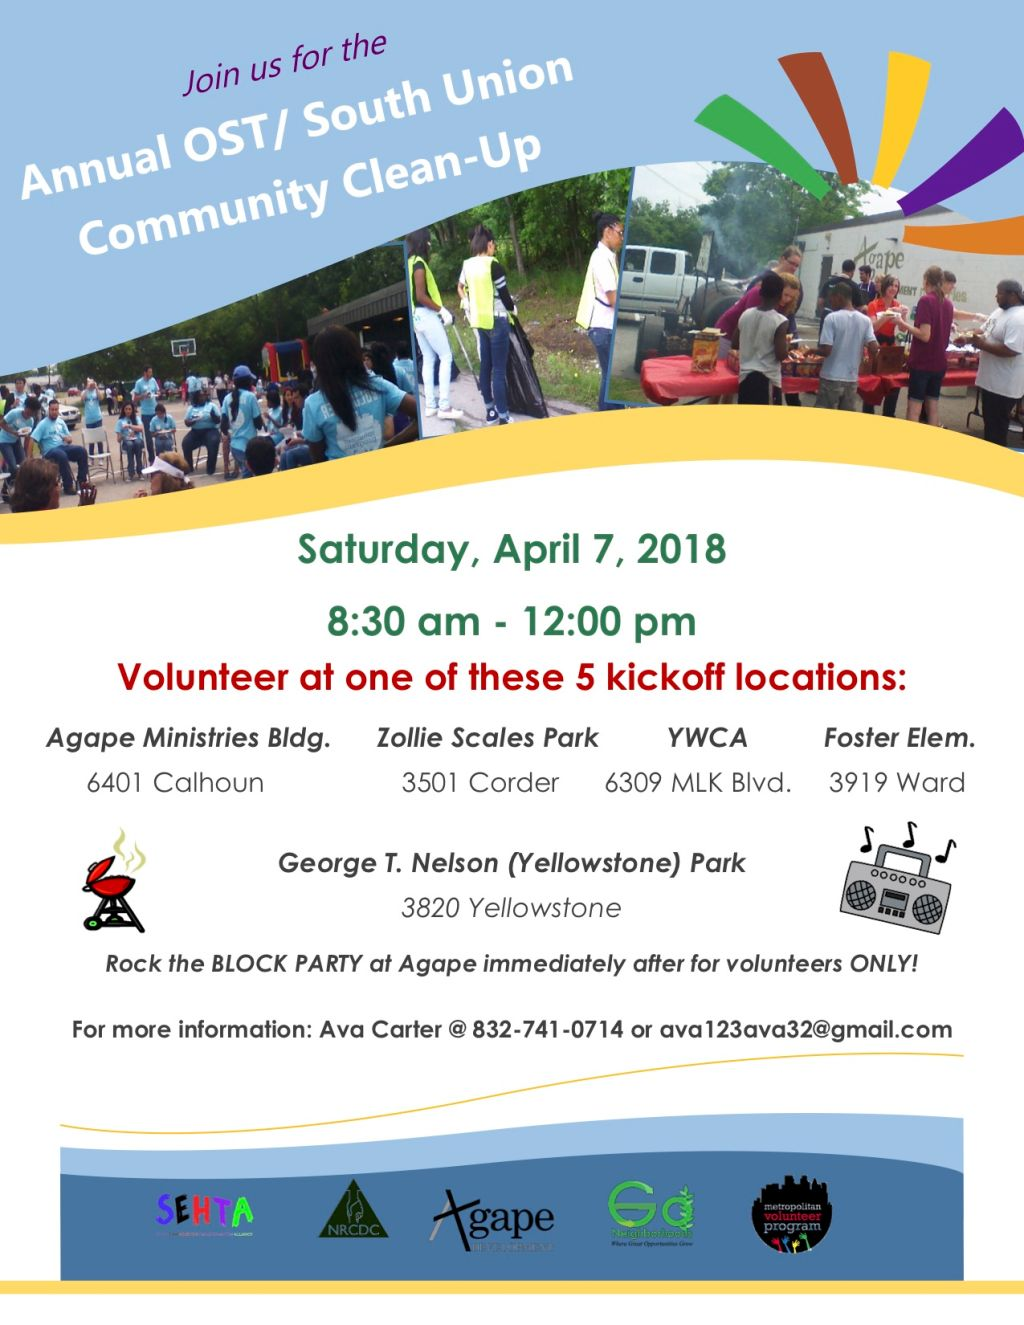 OST / South Union Community Clean Up